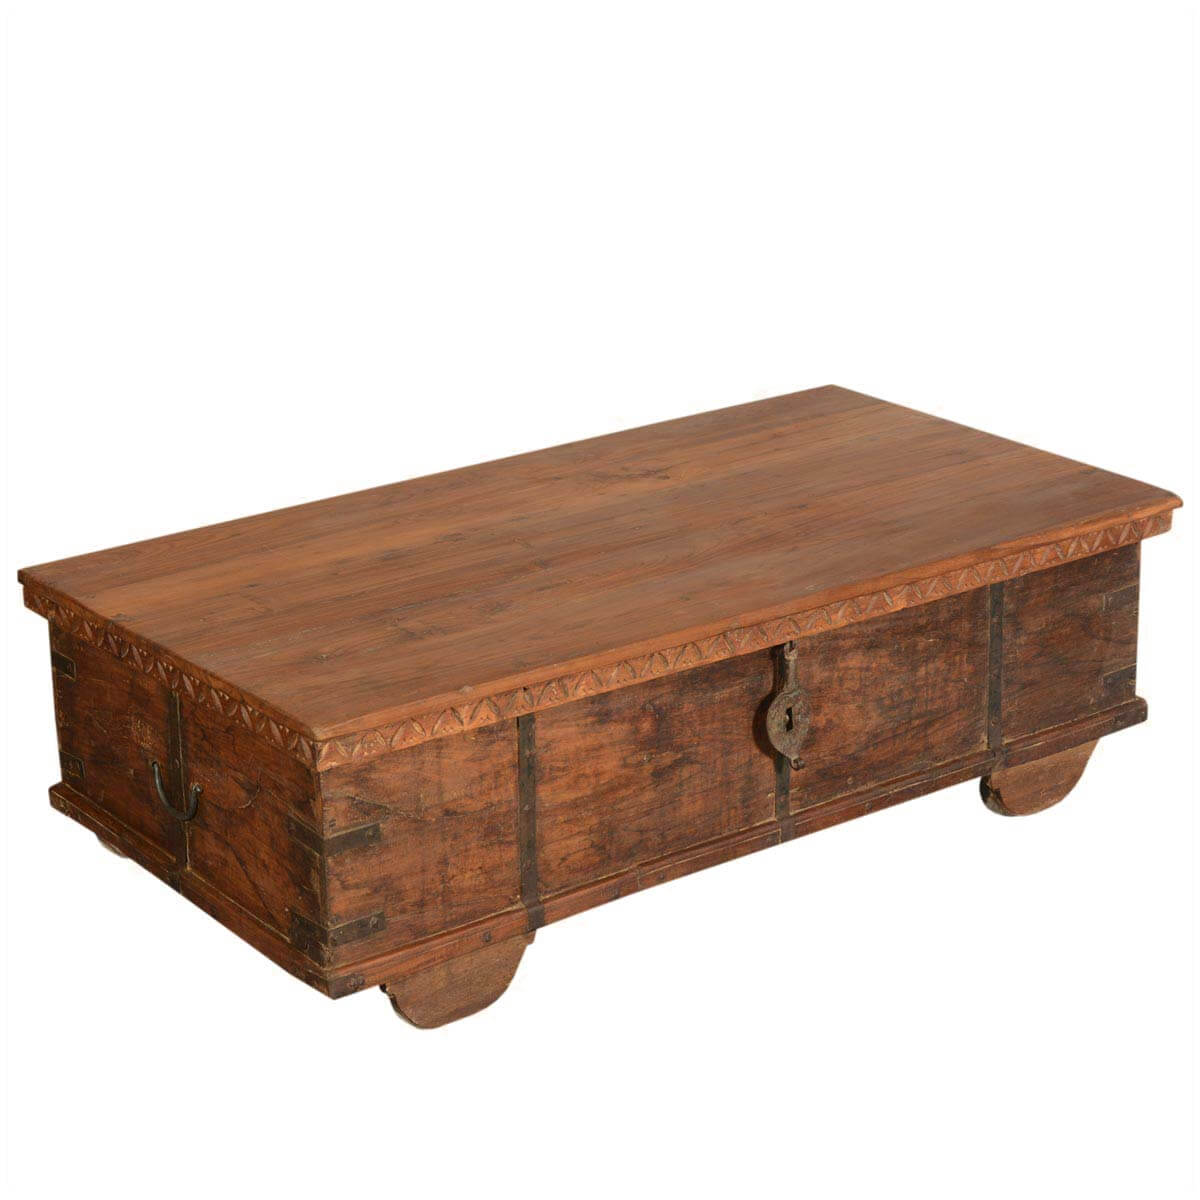 Langley reclaimed wood rustic metal accent storage trunk coffee table Recycled wood coffee table